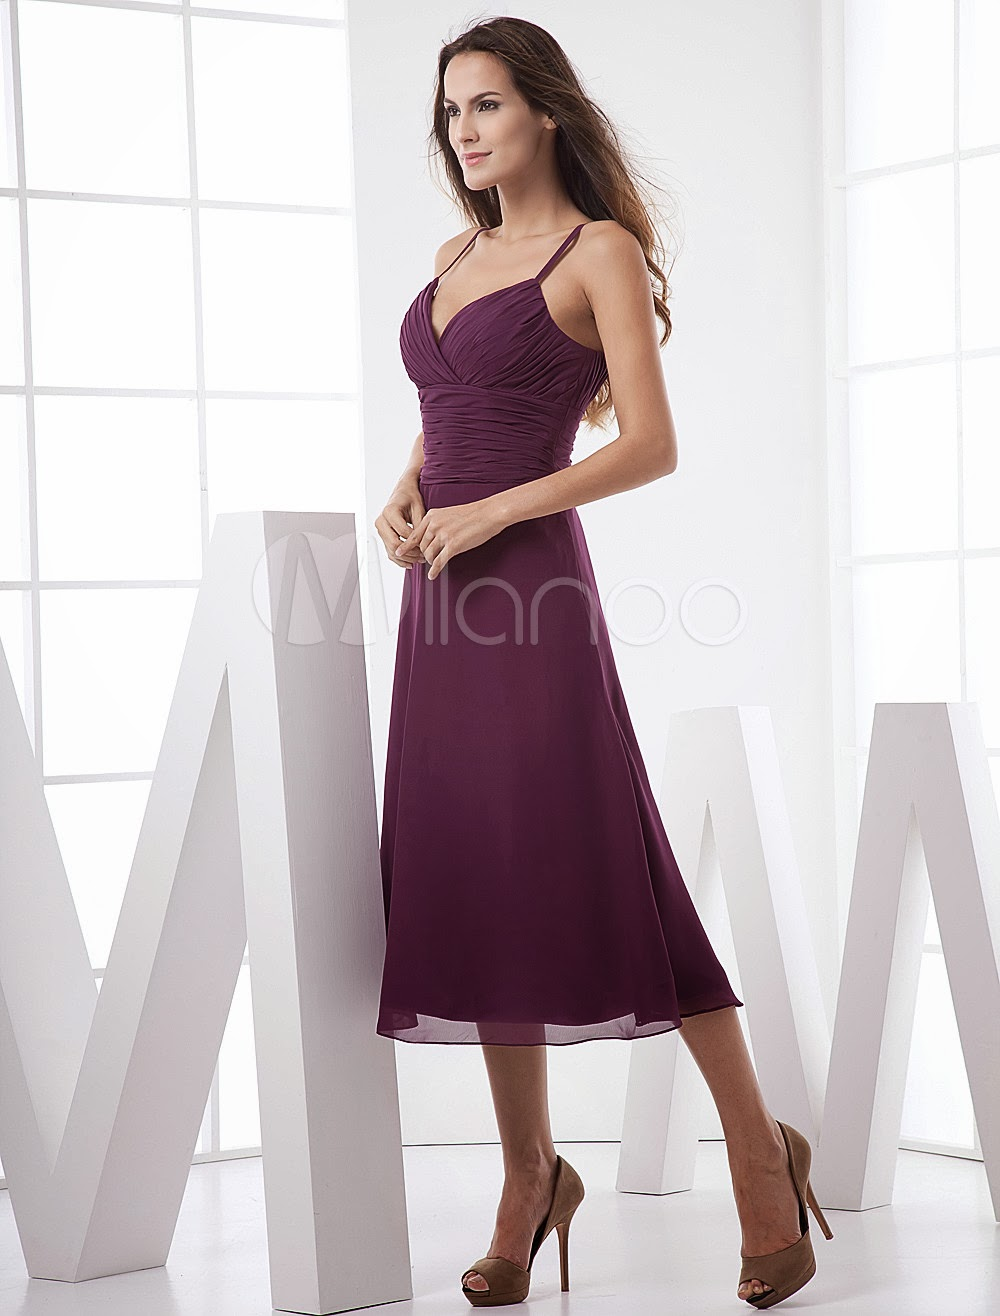 China Wholesale Dresses - Classic Spaghetti Sweetheart Wrapped Tea Length Chiffon Summer Prom Dress